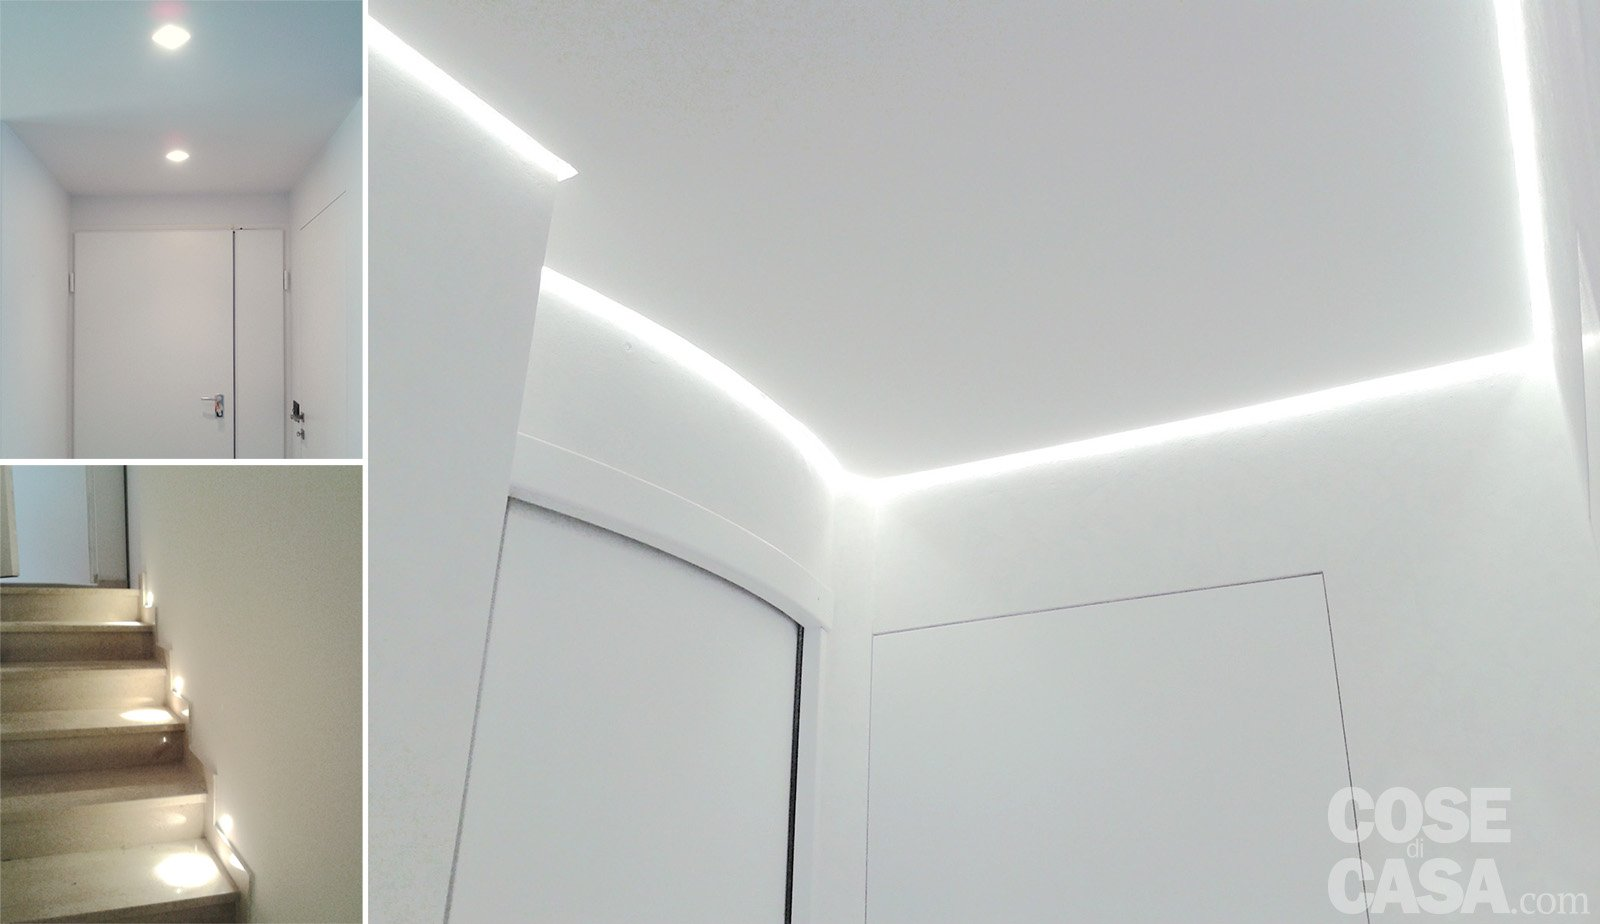 Casa immobiliare accessori illuminazione led a soffitto for Illuminazione a led